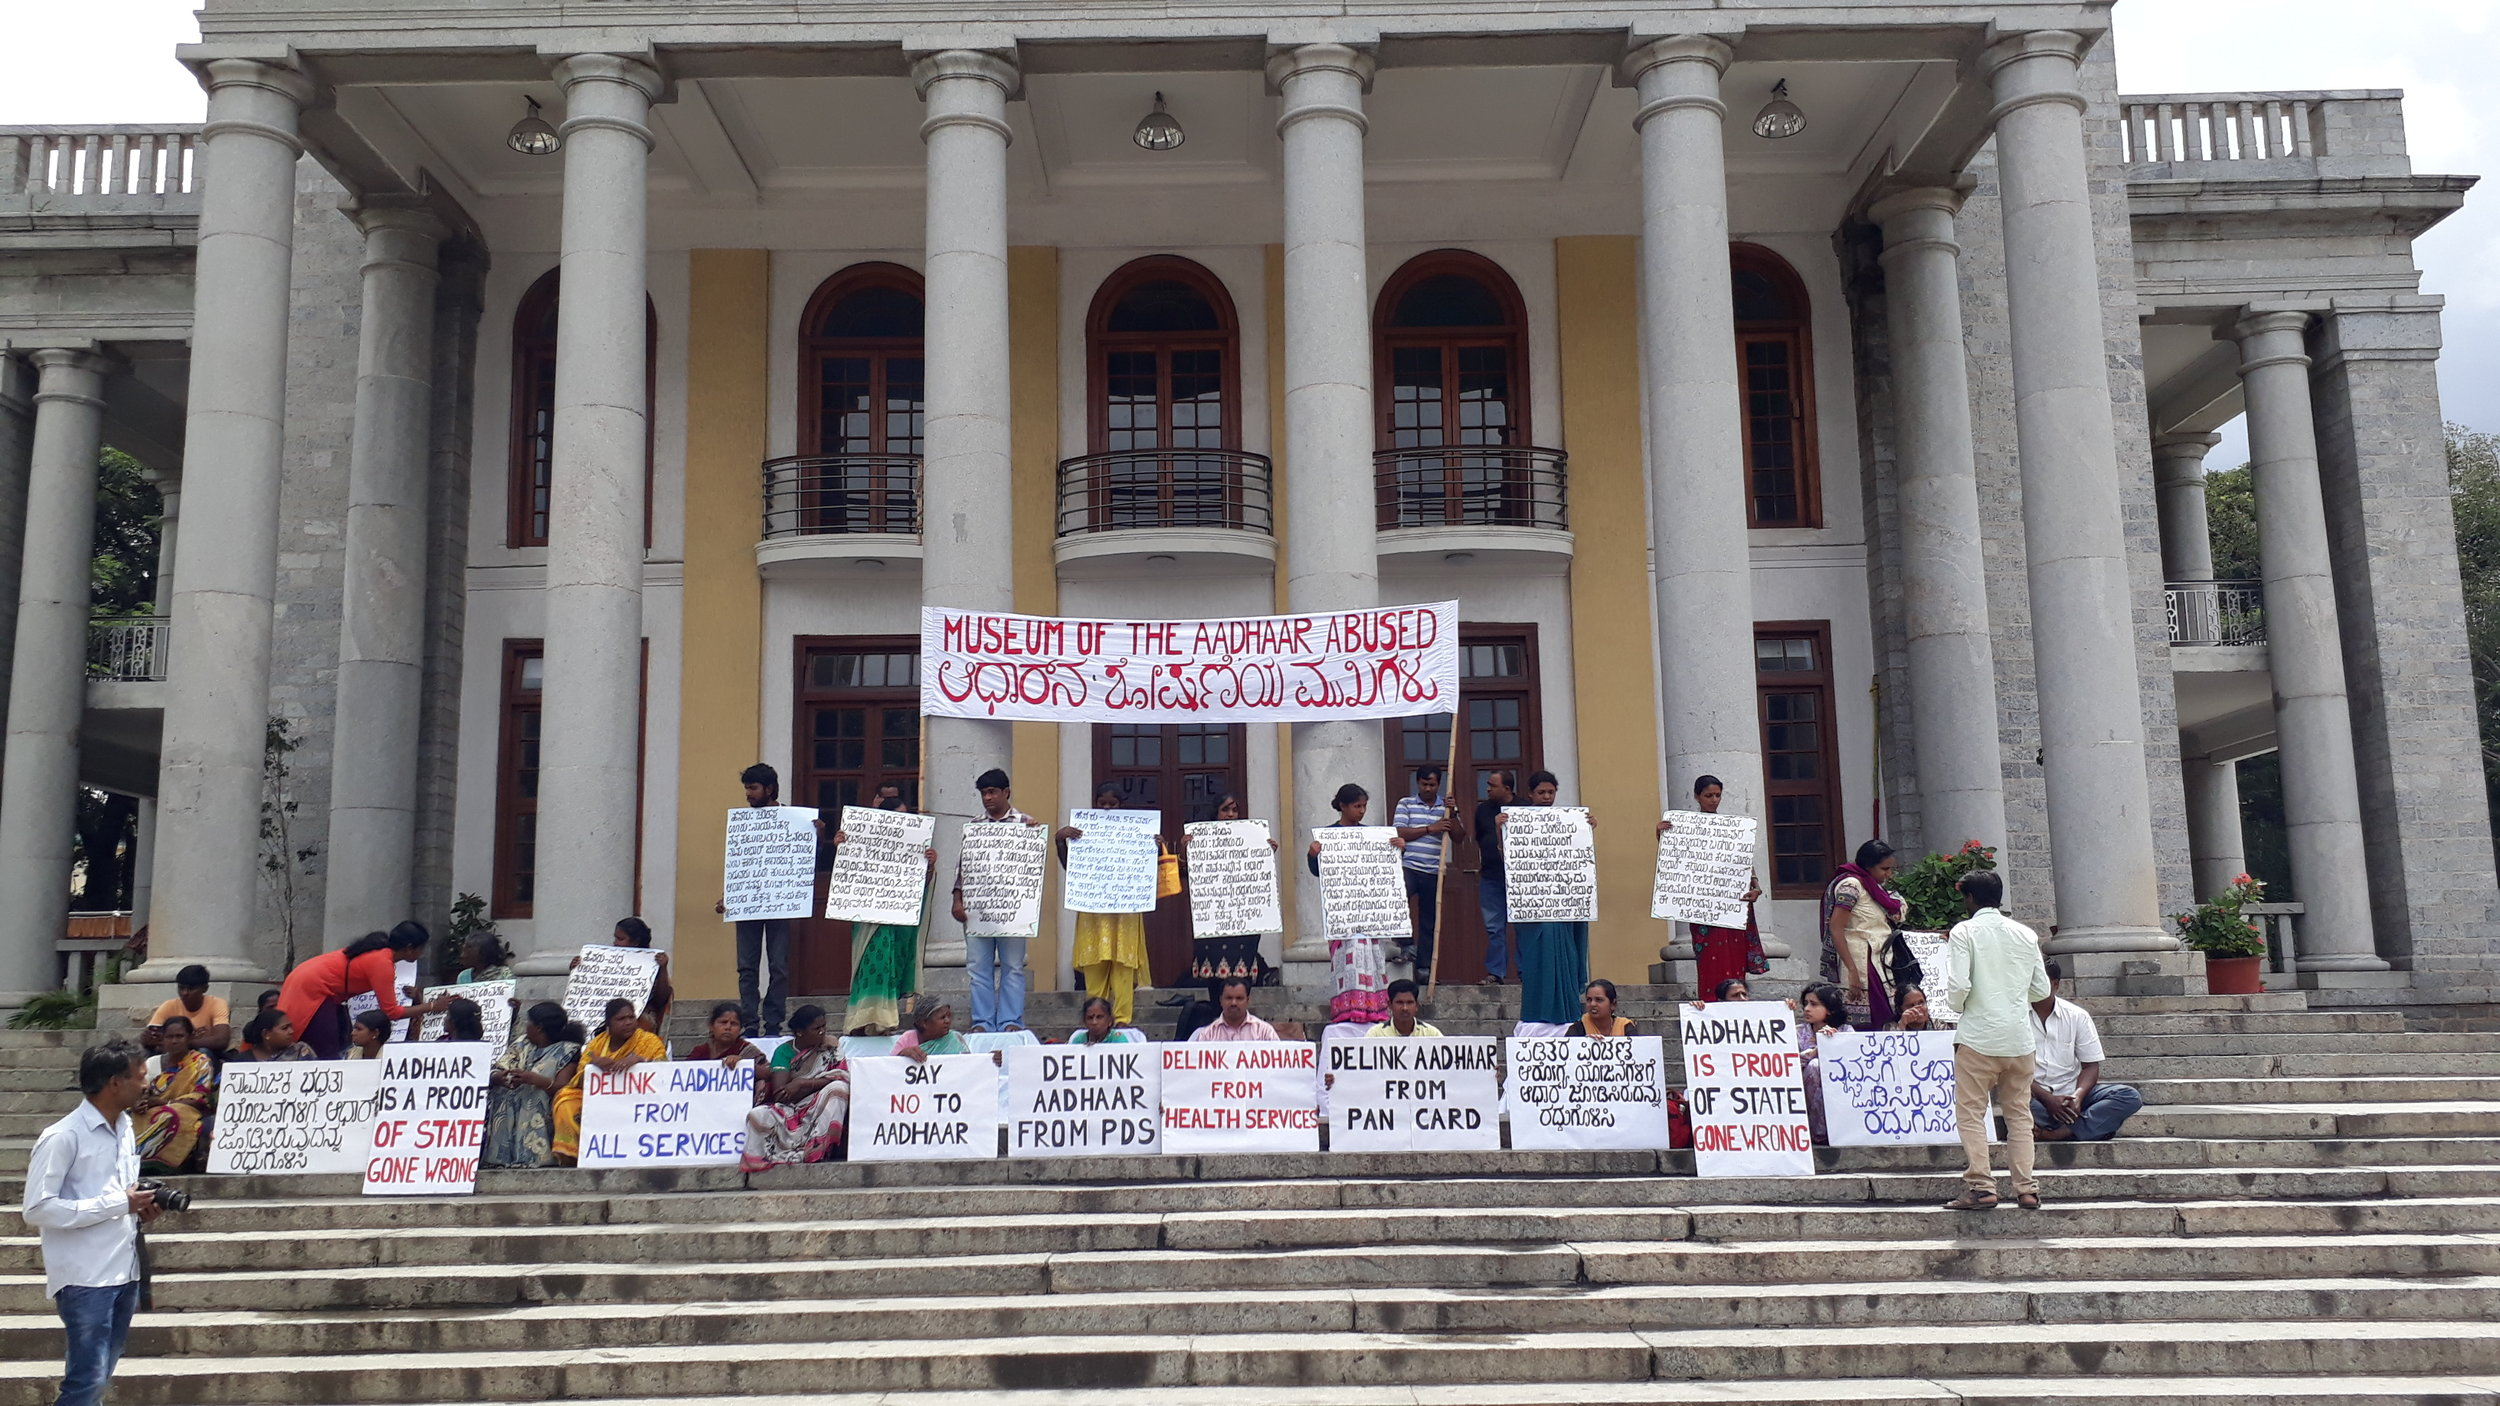 Museum of the Aadhaar abused, novel protest by people denied their entitlements, 18th Sep 2017, Bangalore Town Hall, Karnataka